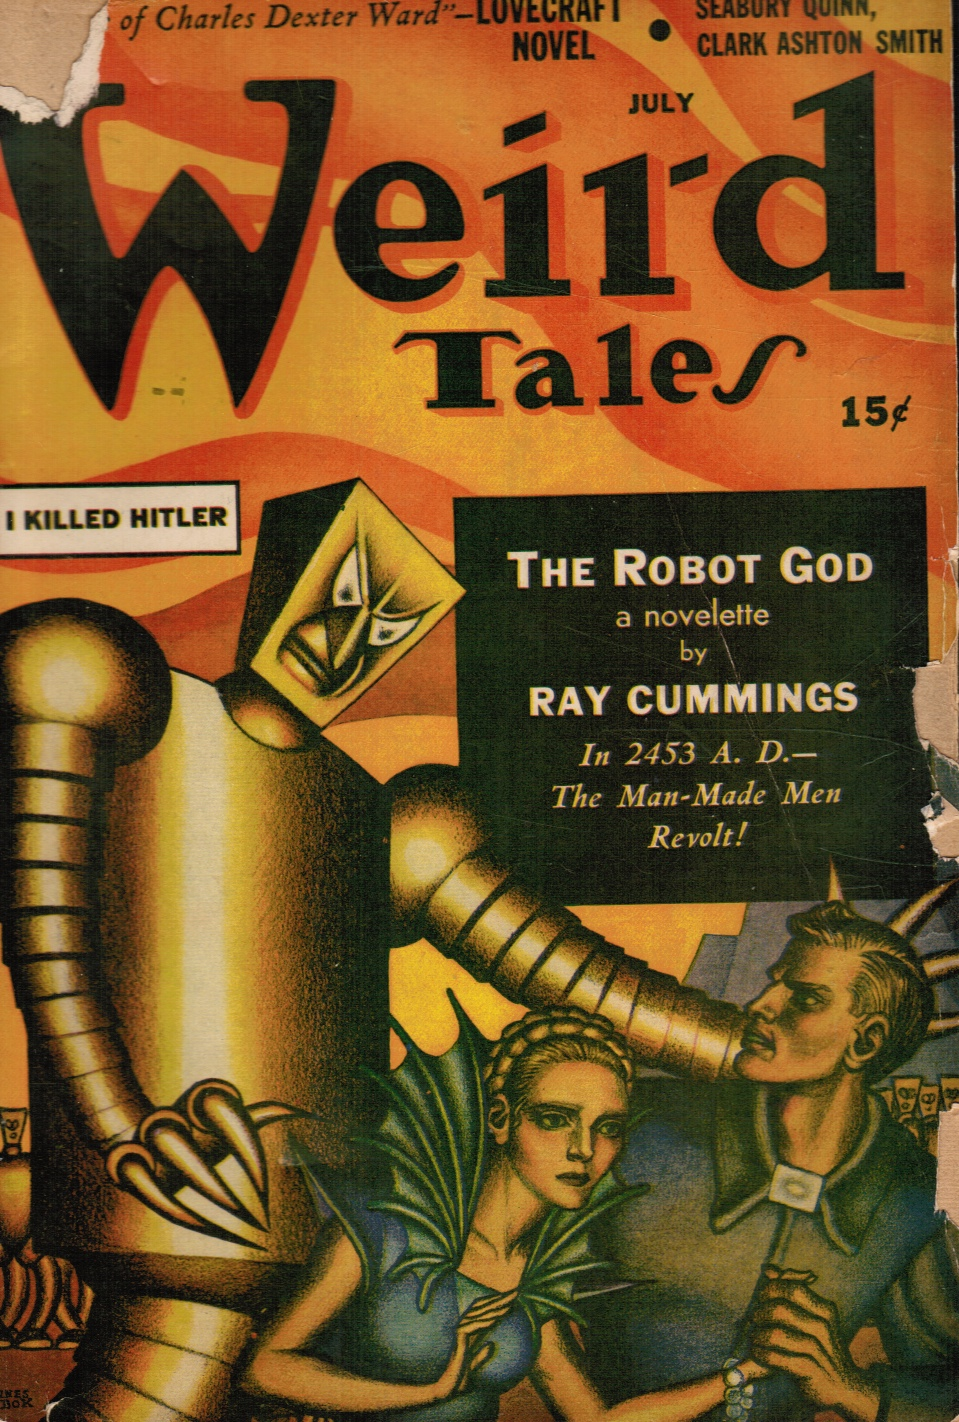 Image for Weird Tales - July 1941 - Vol. 35, No. 10 I Killed Hitler